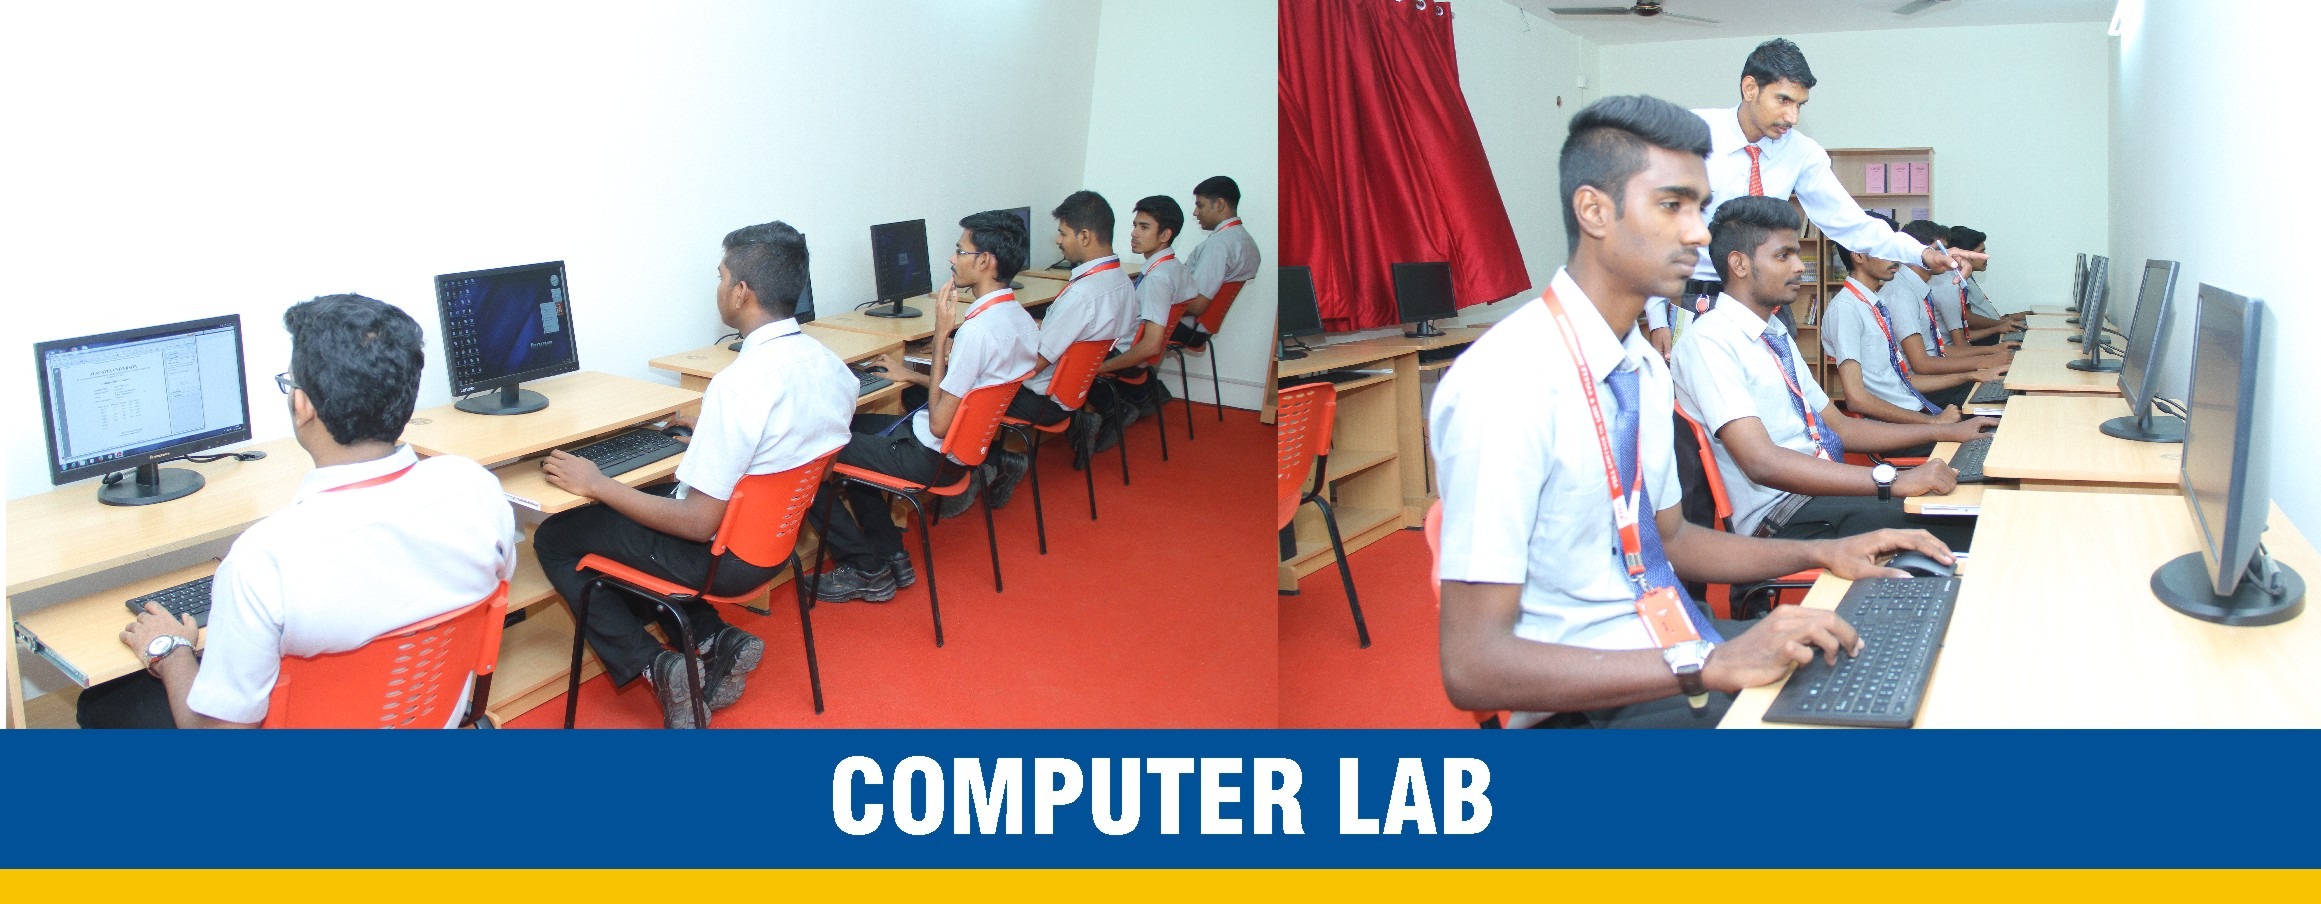 Aset Computer Lab